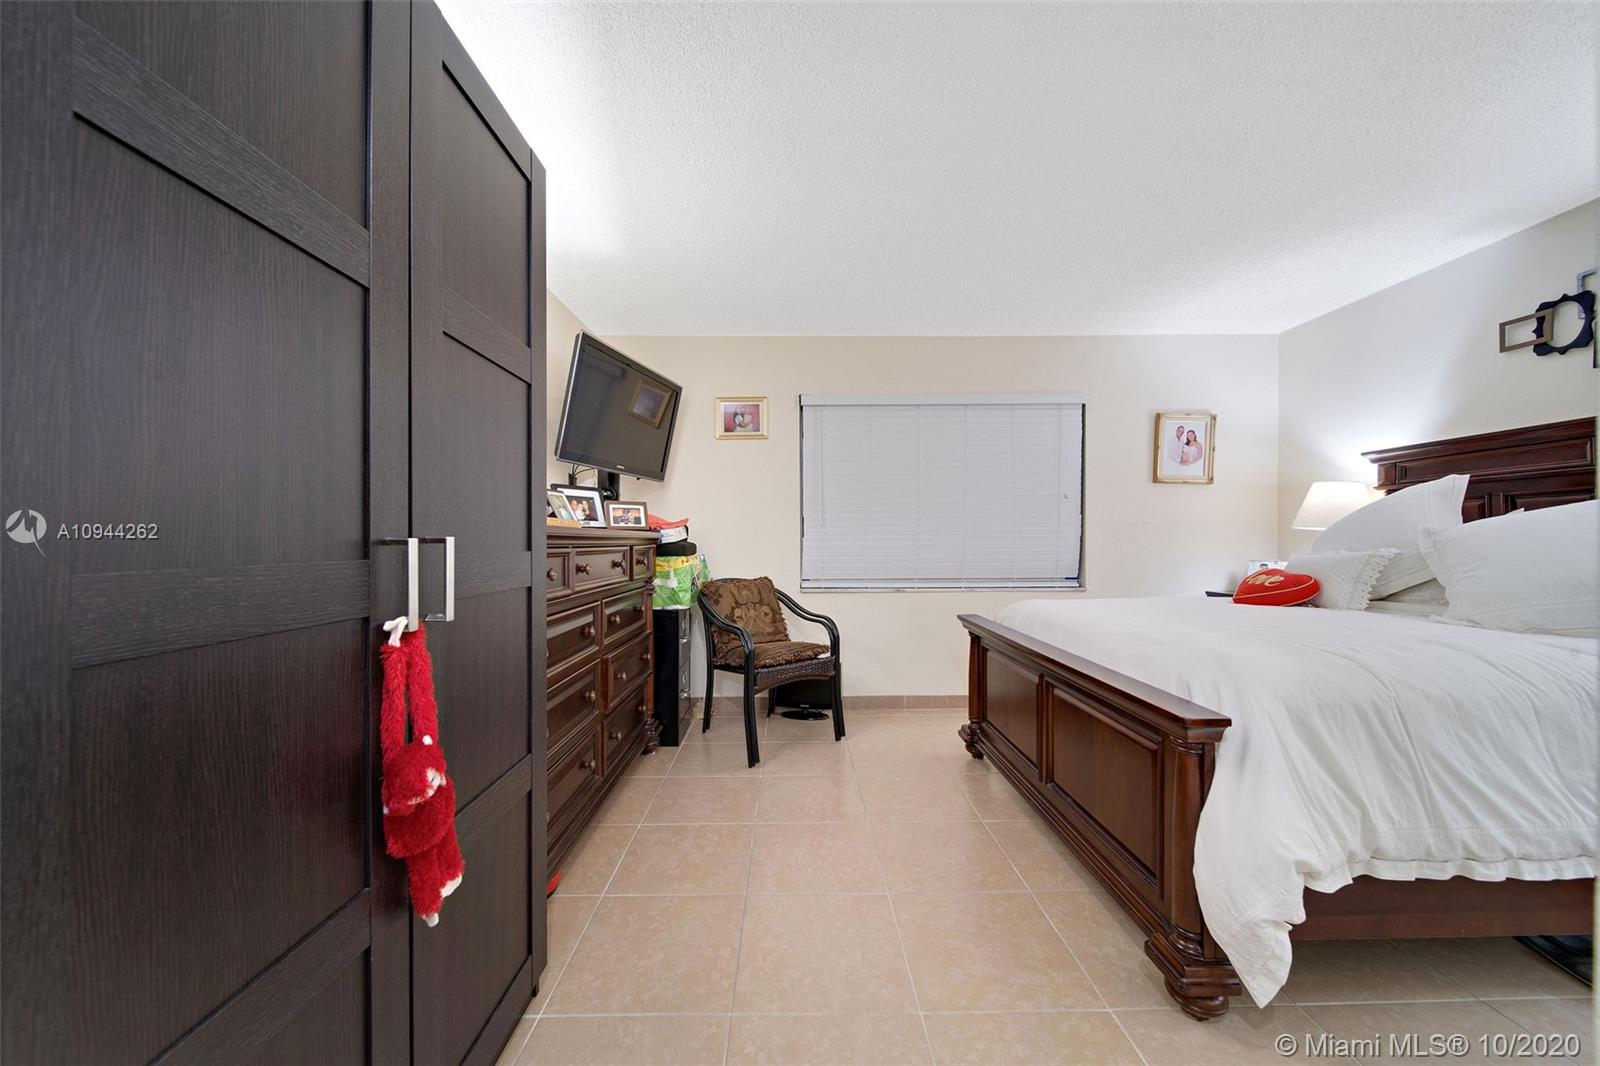 7705 Camino Real # 104, Miami, Florida 33143, 2 Bedrooms Bedrooms, ,1 BathroomBathrooms,Residential,For Sale,7705 Camino Real # 104,A10944262